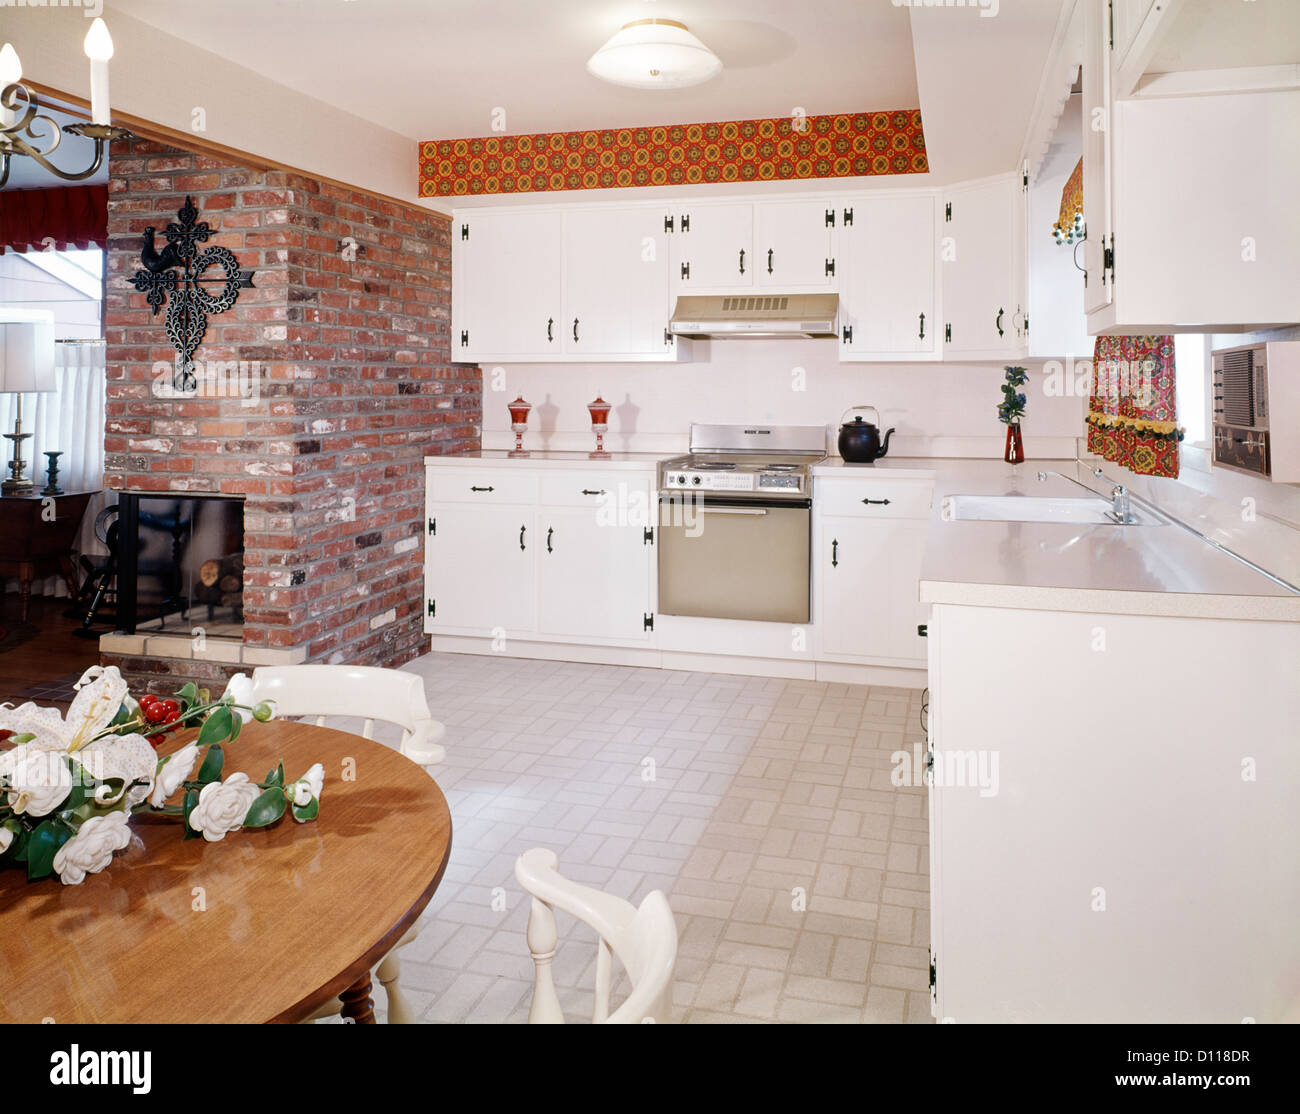 Kitchen Interior With Pink Furniture And Tiles Stock: 1960s KITCHEN INTERIOR WITH BRICK WALL AND WHITE COUNTRY